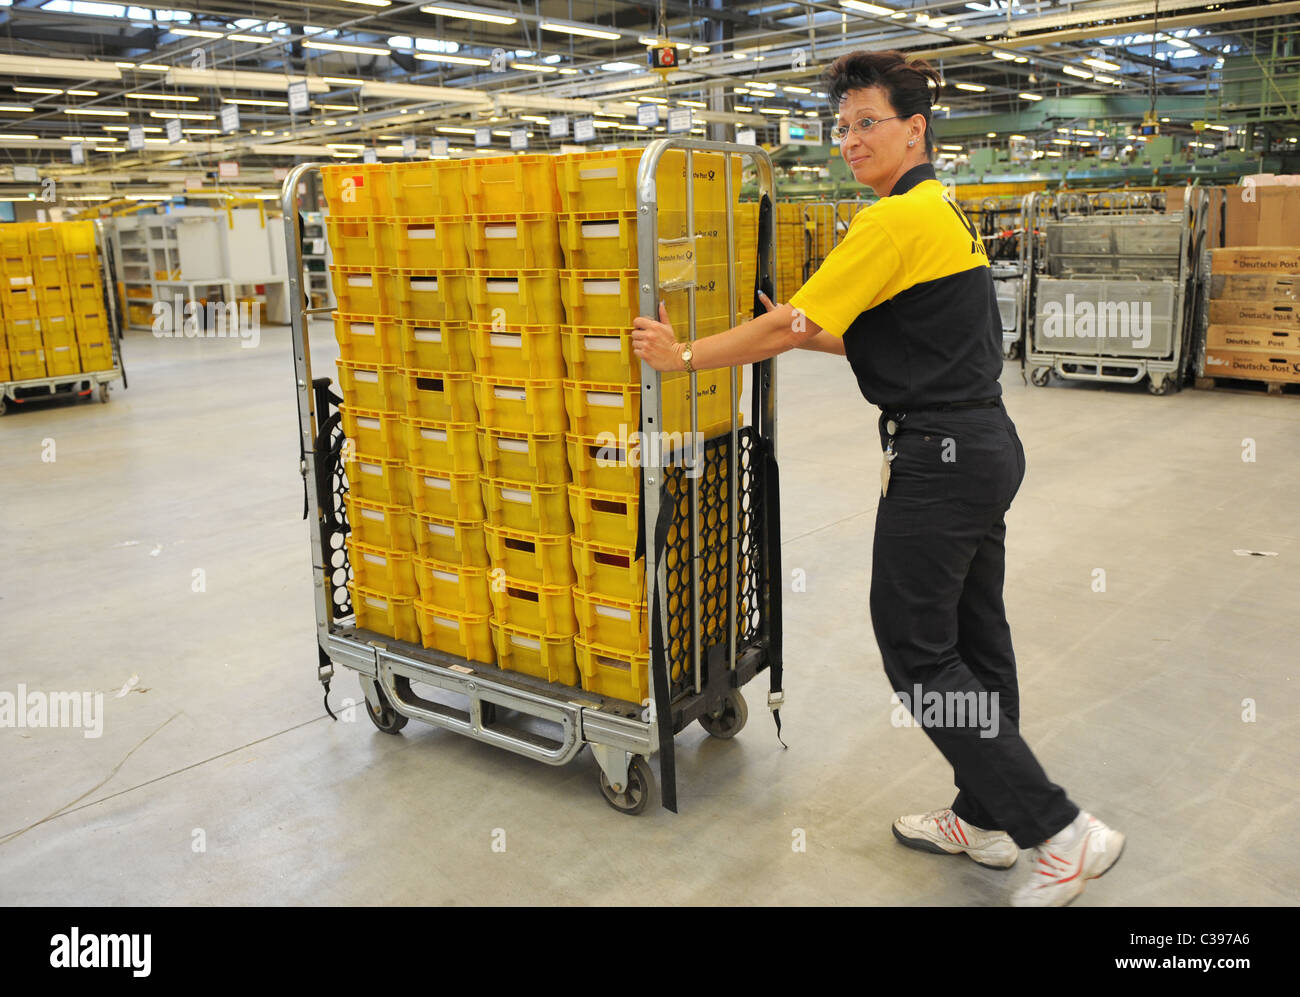 An employee with a trolley in a postal sorting centre, Berlin, Germany - Stock Image